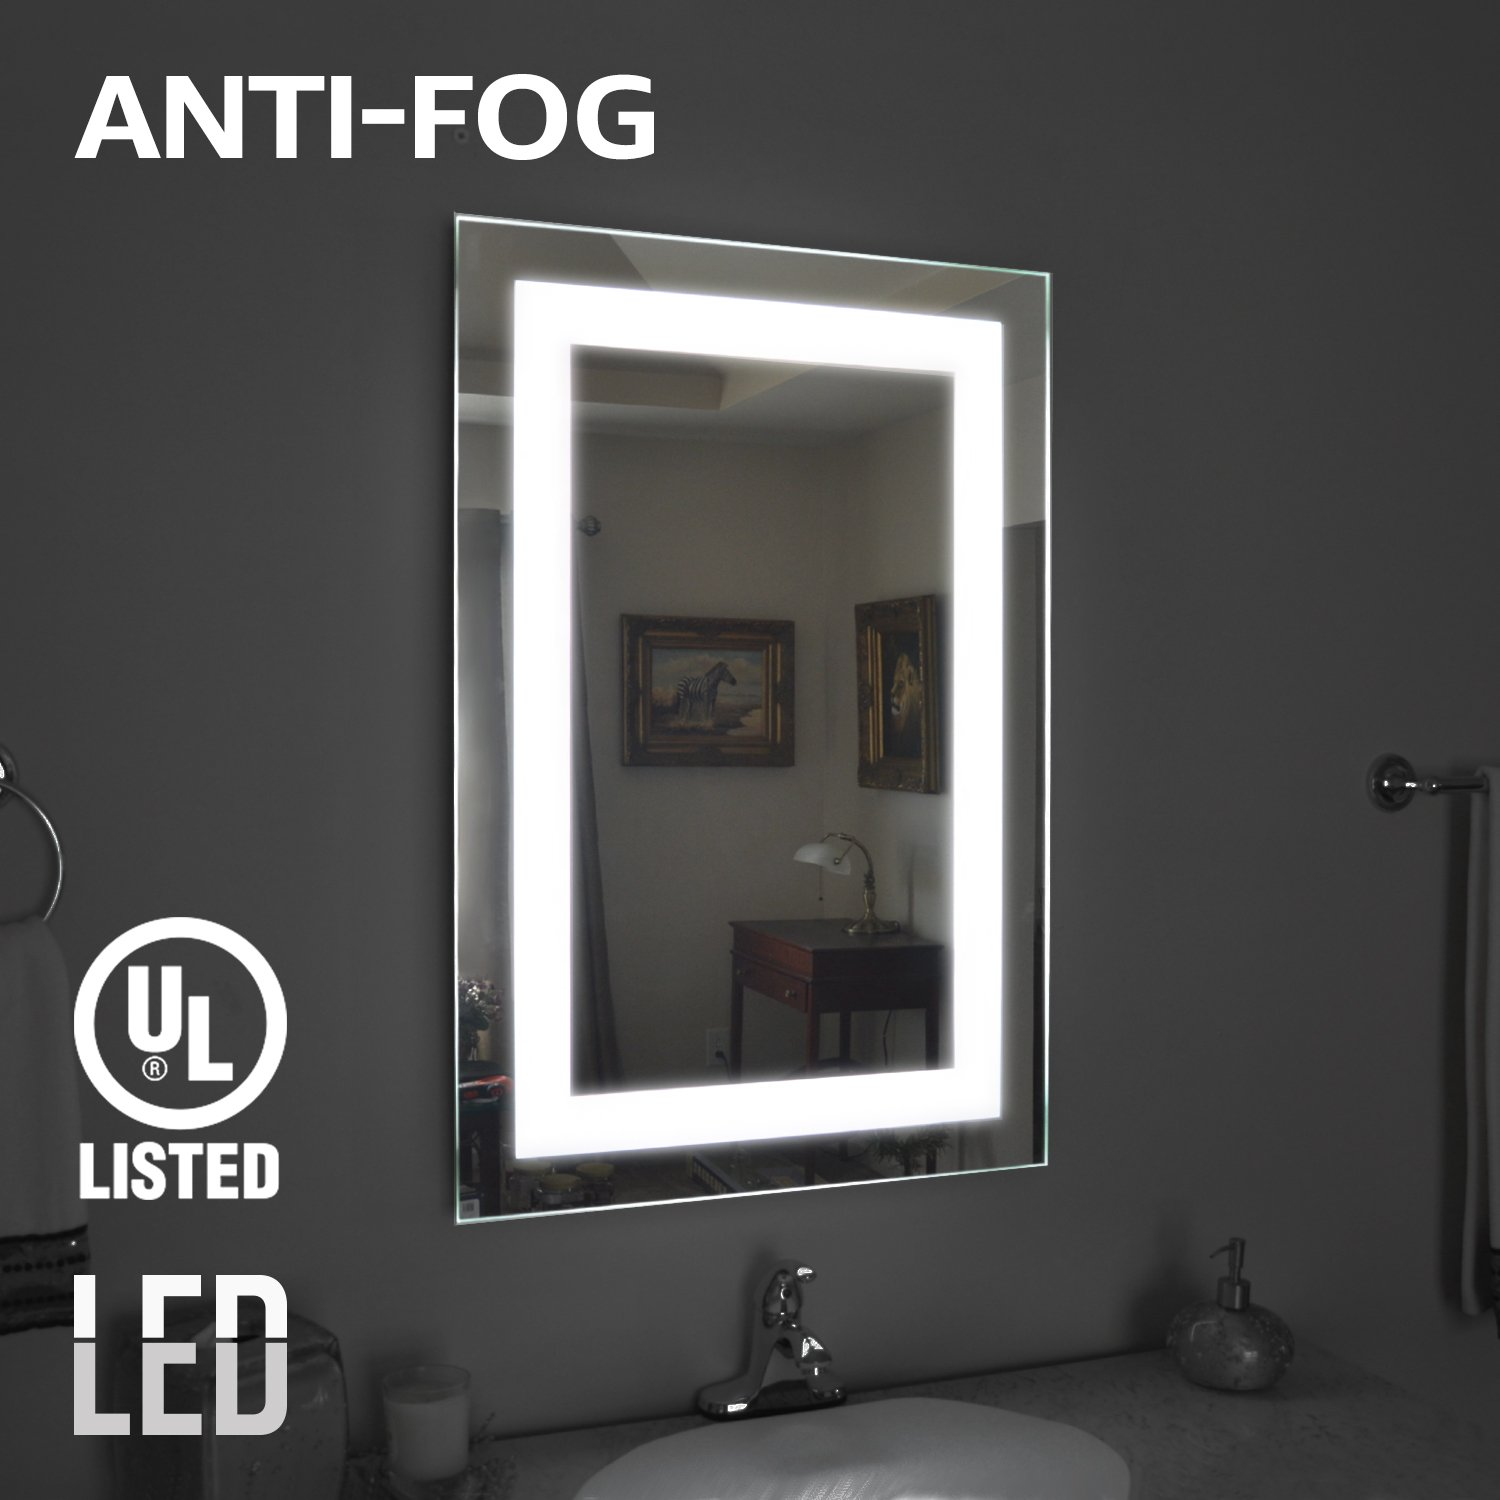 "Fogless LED Lighted Makeup Mirror, UL-listed, Wall Mounted Vanity Silver Mirror for Bathroom, SPA, Shower, Polished Edge, 32"" × 24"", Inner Rectangle Ring Frosted Photic Zone"